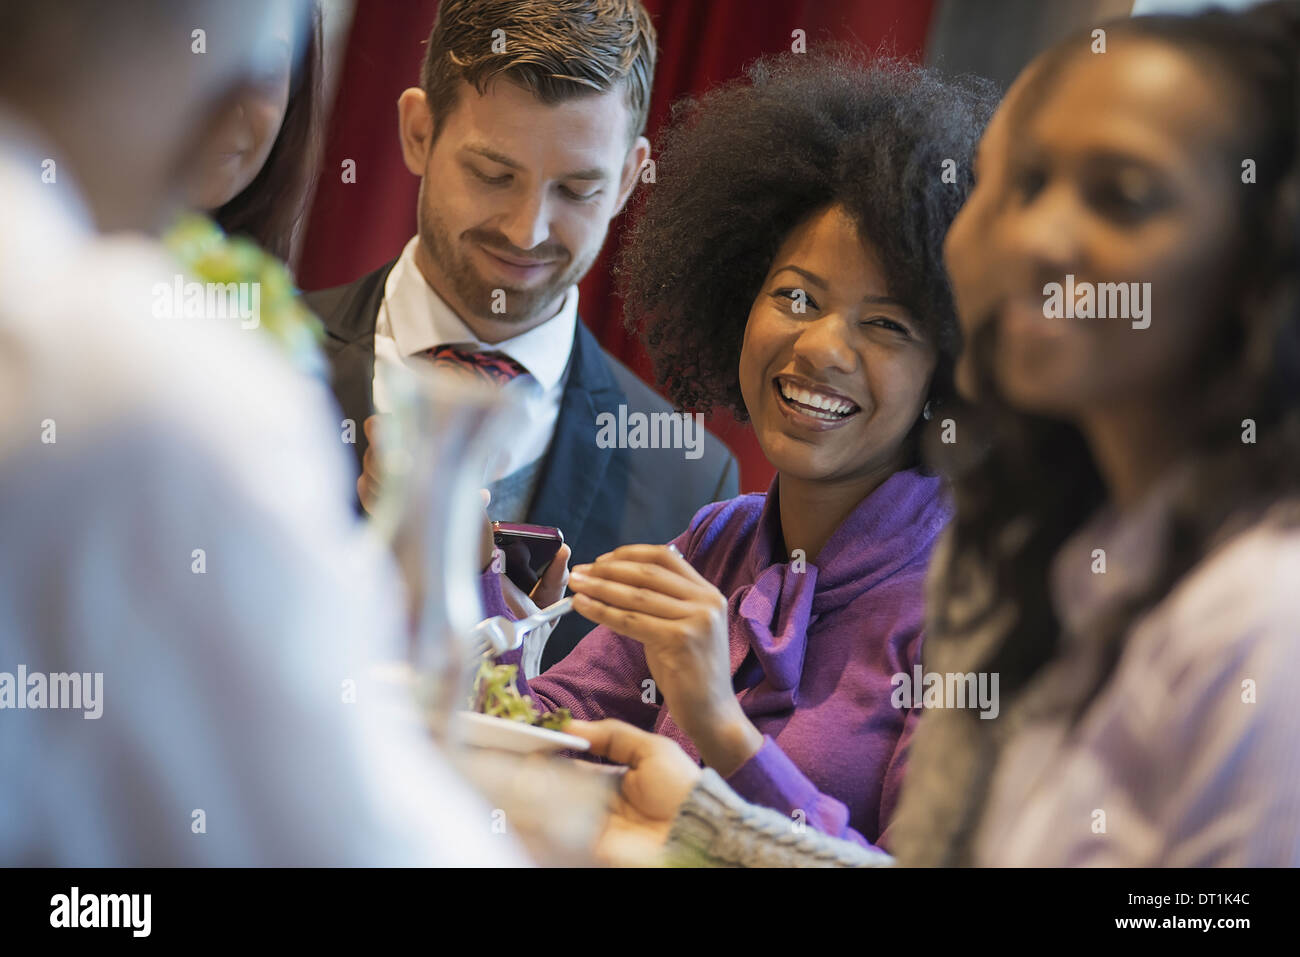 A group of people in a coffee shop one using a mobile phone and others talking to each other Men and women - Stock Image